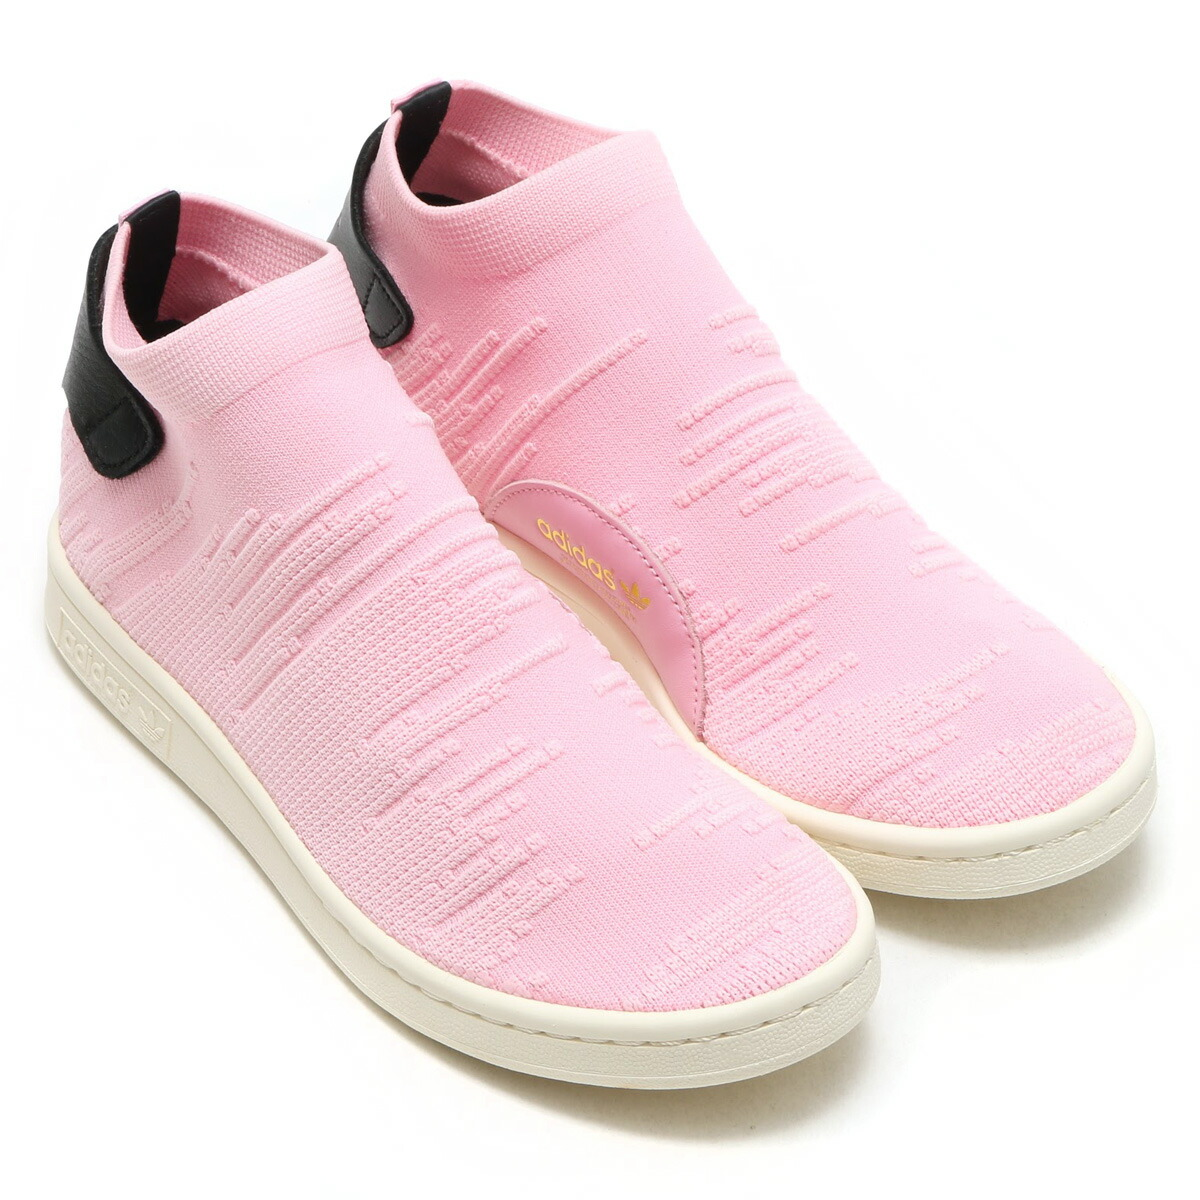 huge discount 2fa67 32f53 adidas STAN SMITH SOCK PK W (アディダススタンスミスソック PK W) PINK 17FW-S